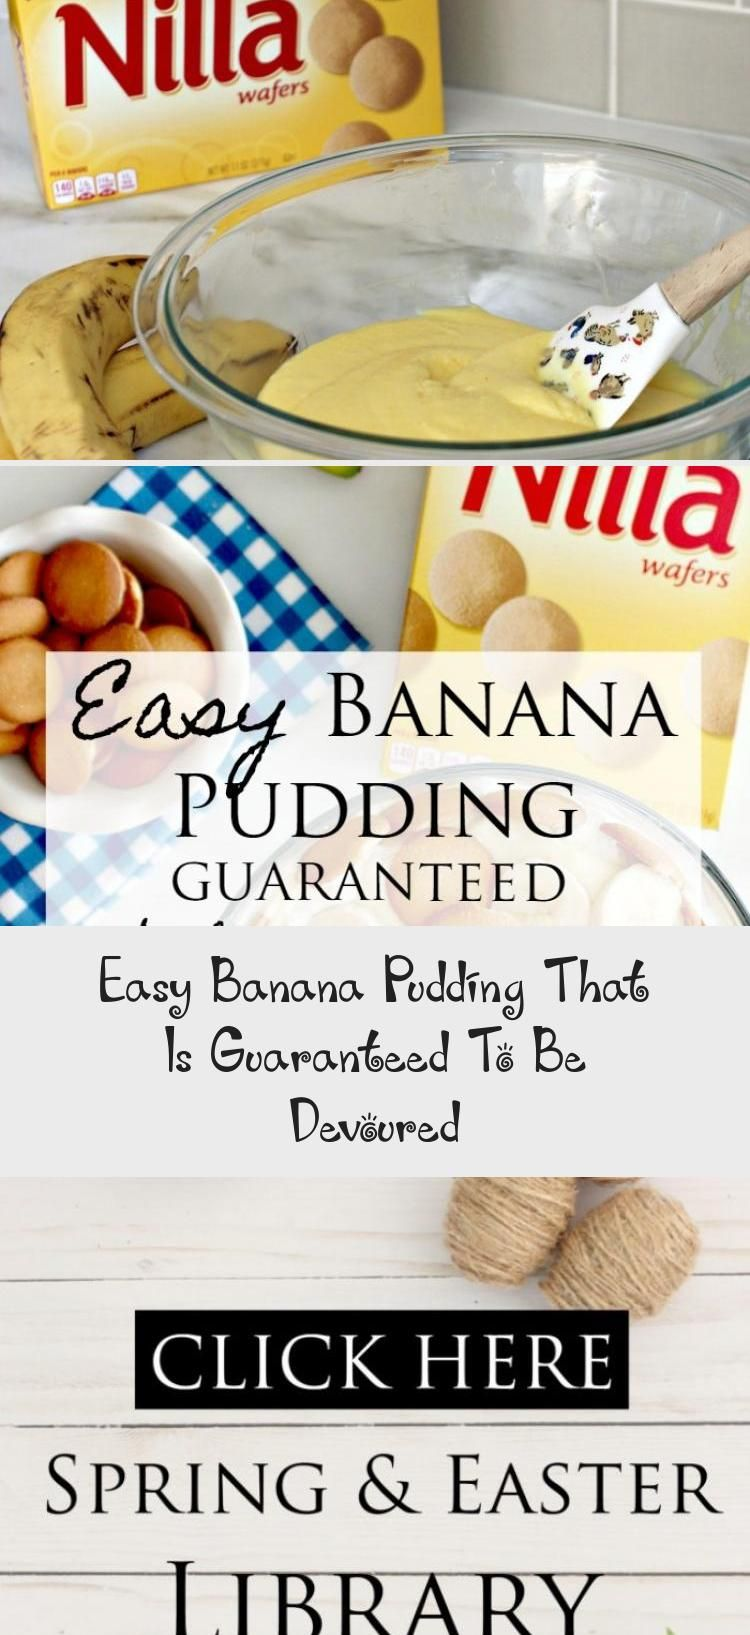 Easy Banana Pudding That Is Guaranteed To Be Devoured - Recipes For Dinner #bananapudding